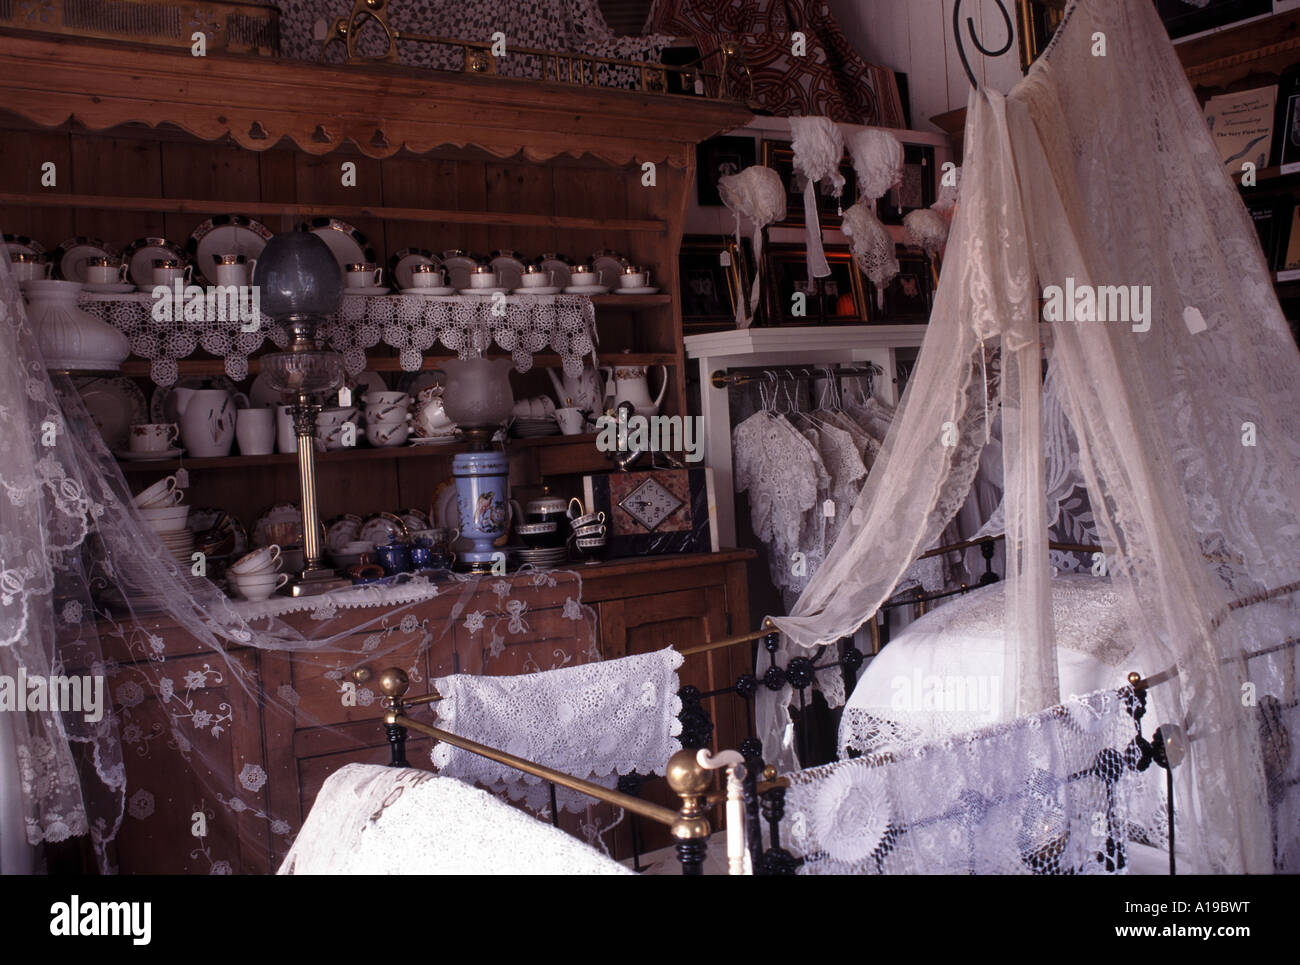 Interior of the Lace Museum shop County Fermanagh Northern Ireland - Stock Image